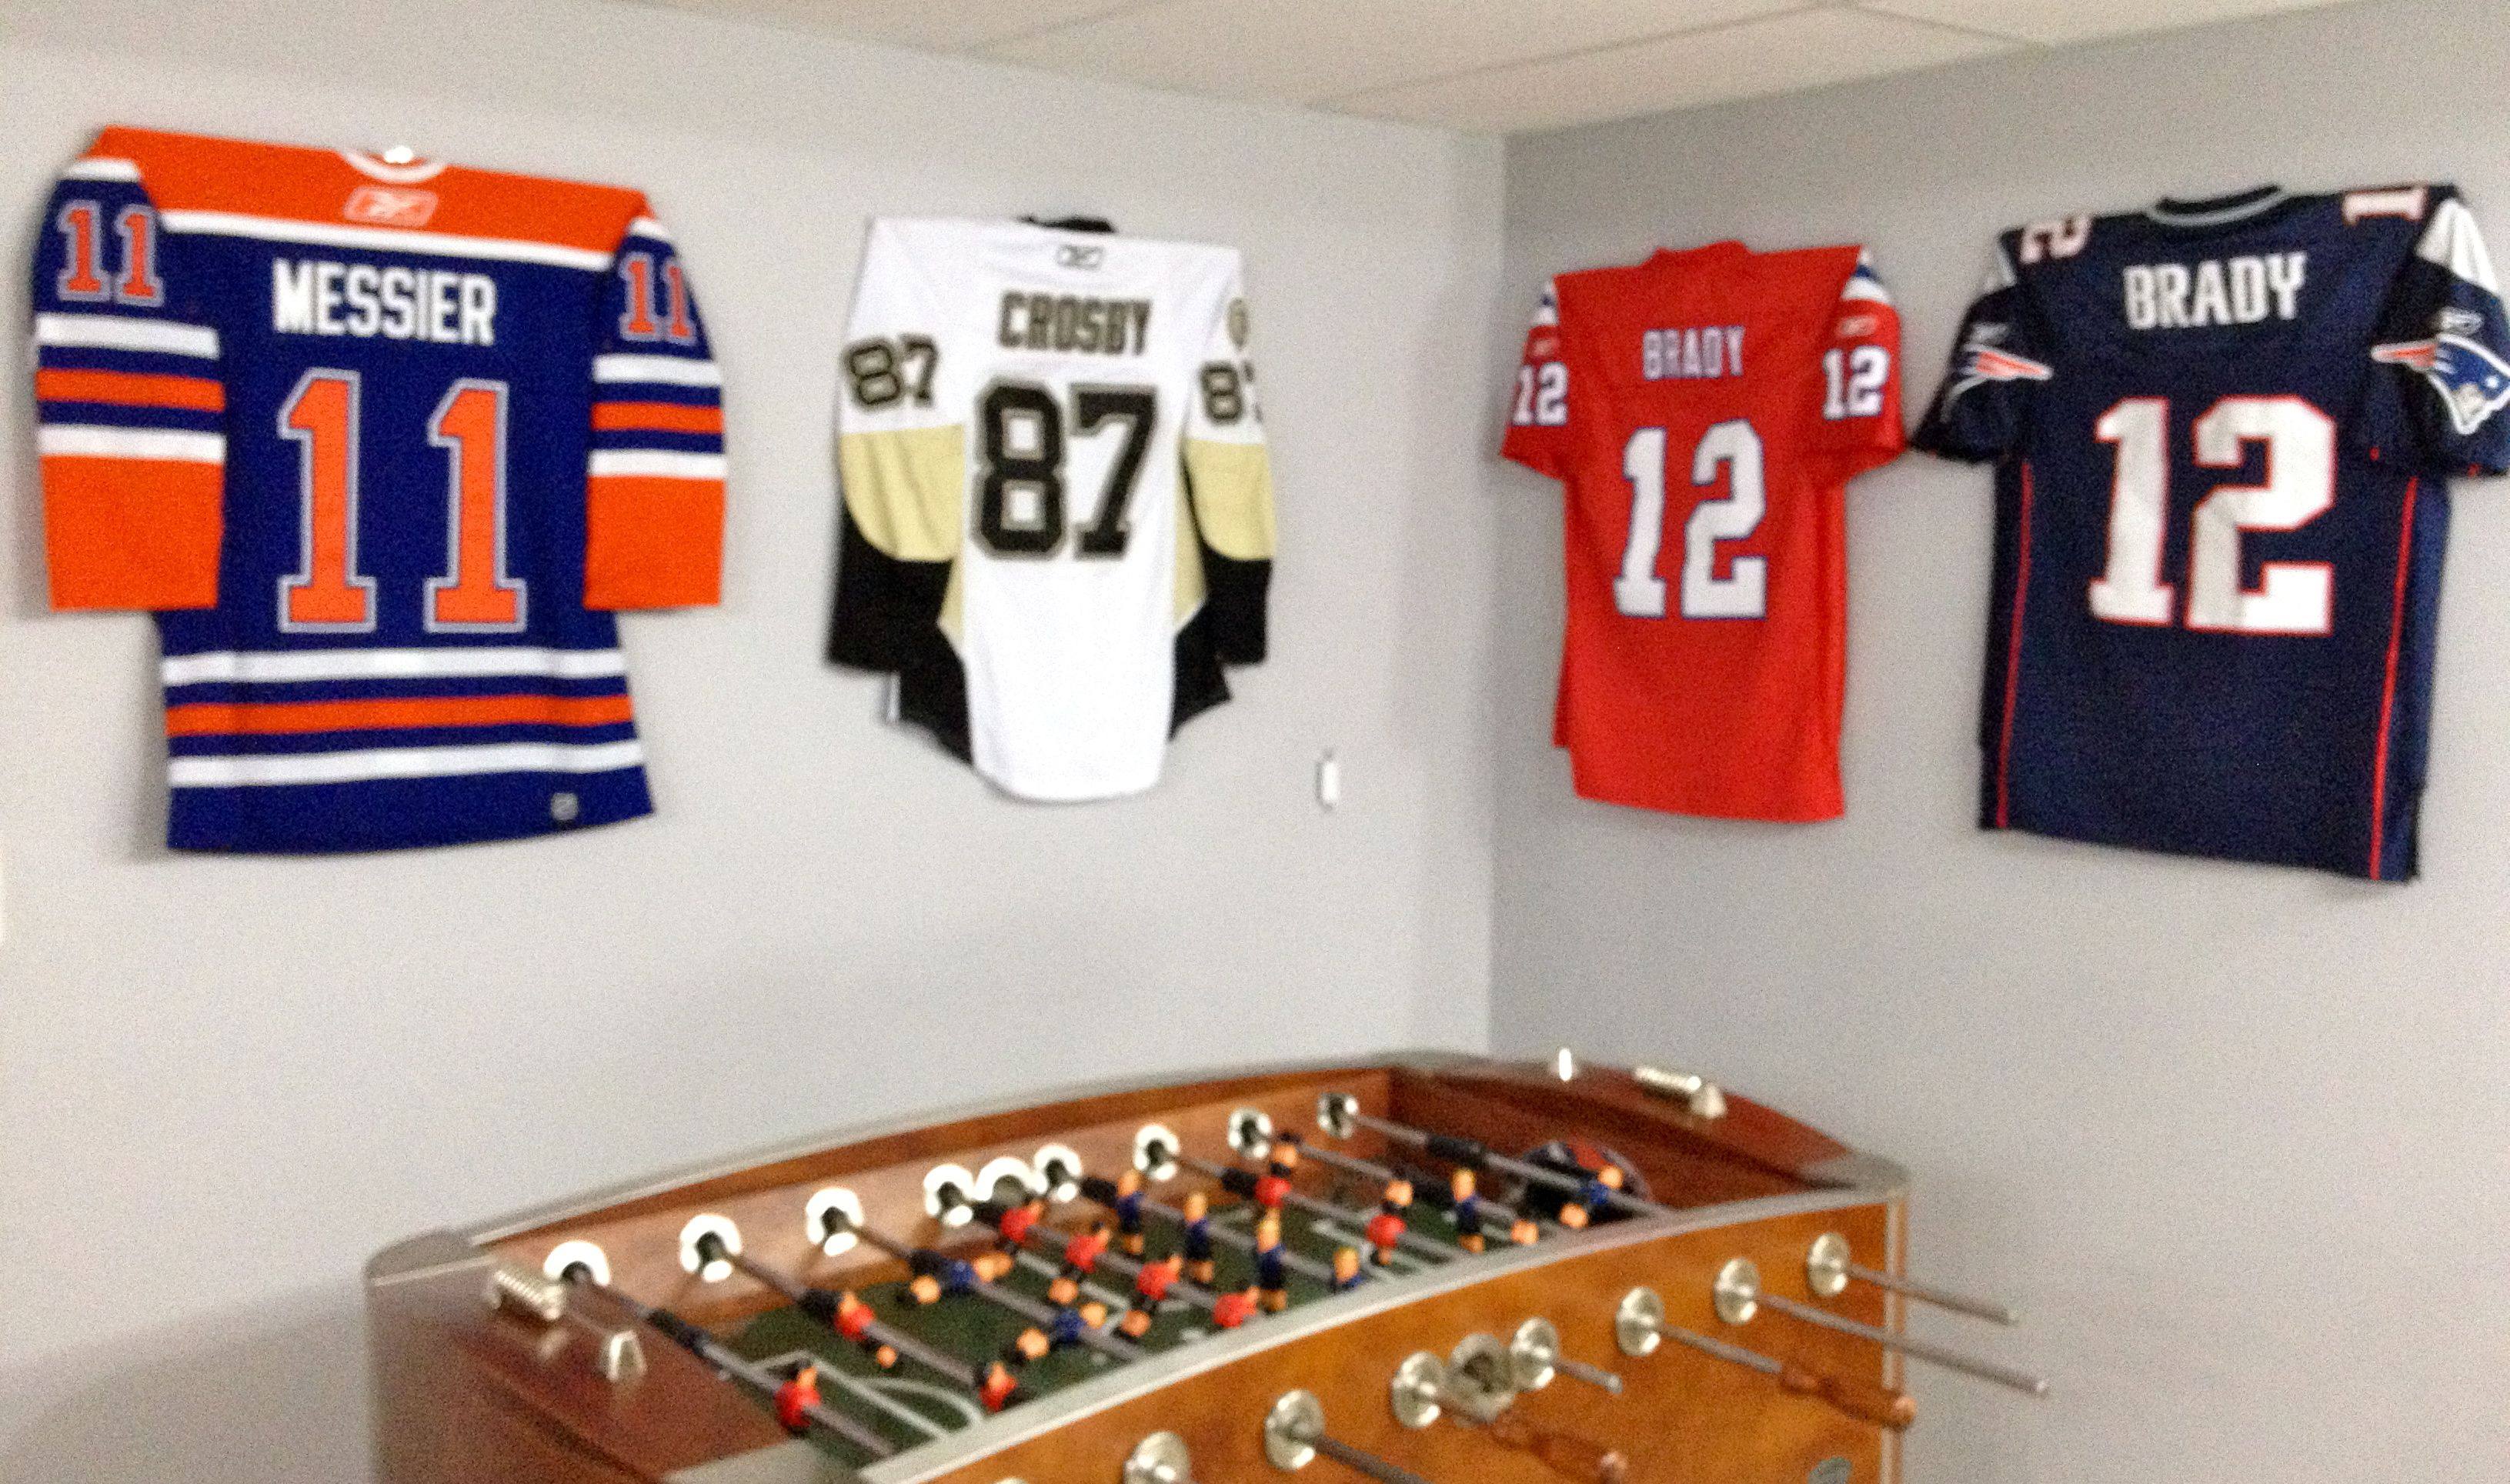 the ultra mount jersey display hanger helps create a sweet game